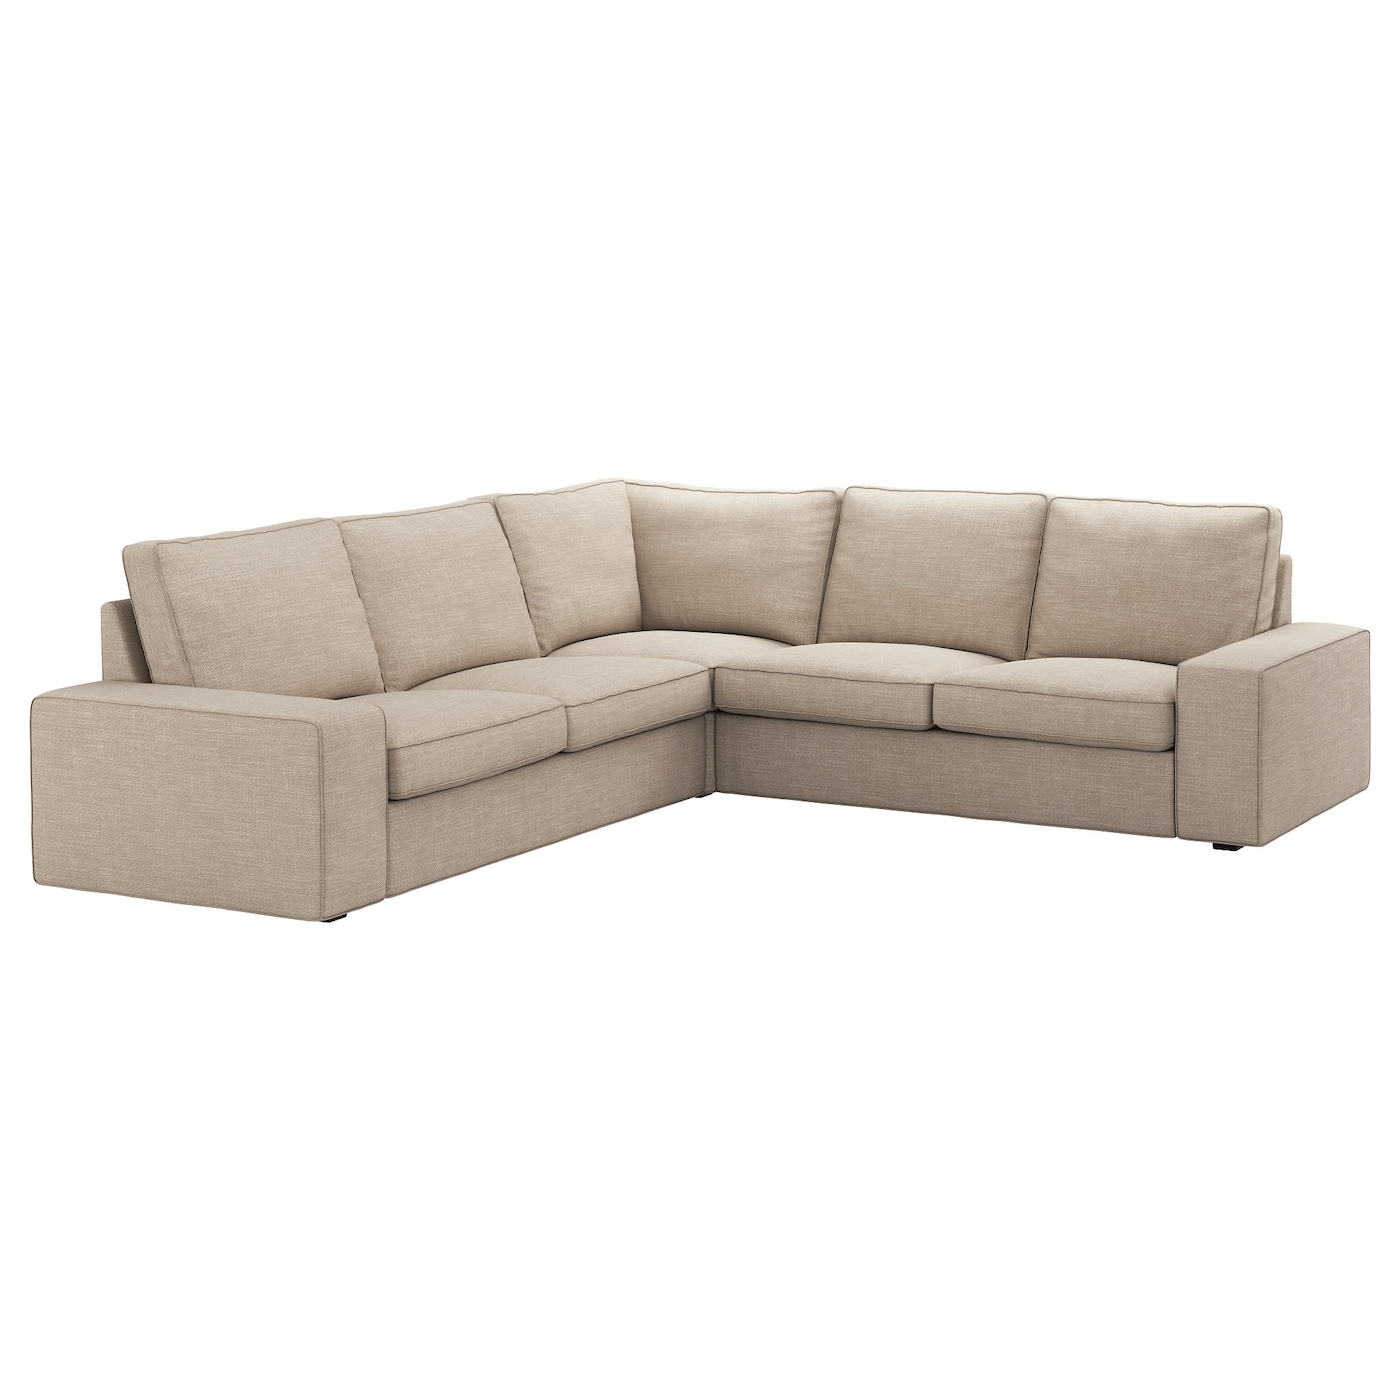 kivik corner sofa 2 2 hillared beige ikea. Black Bedroom Furniture Sets. Home Design Ideas